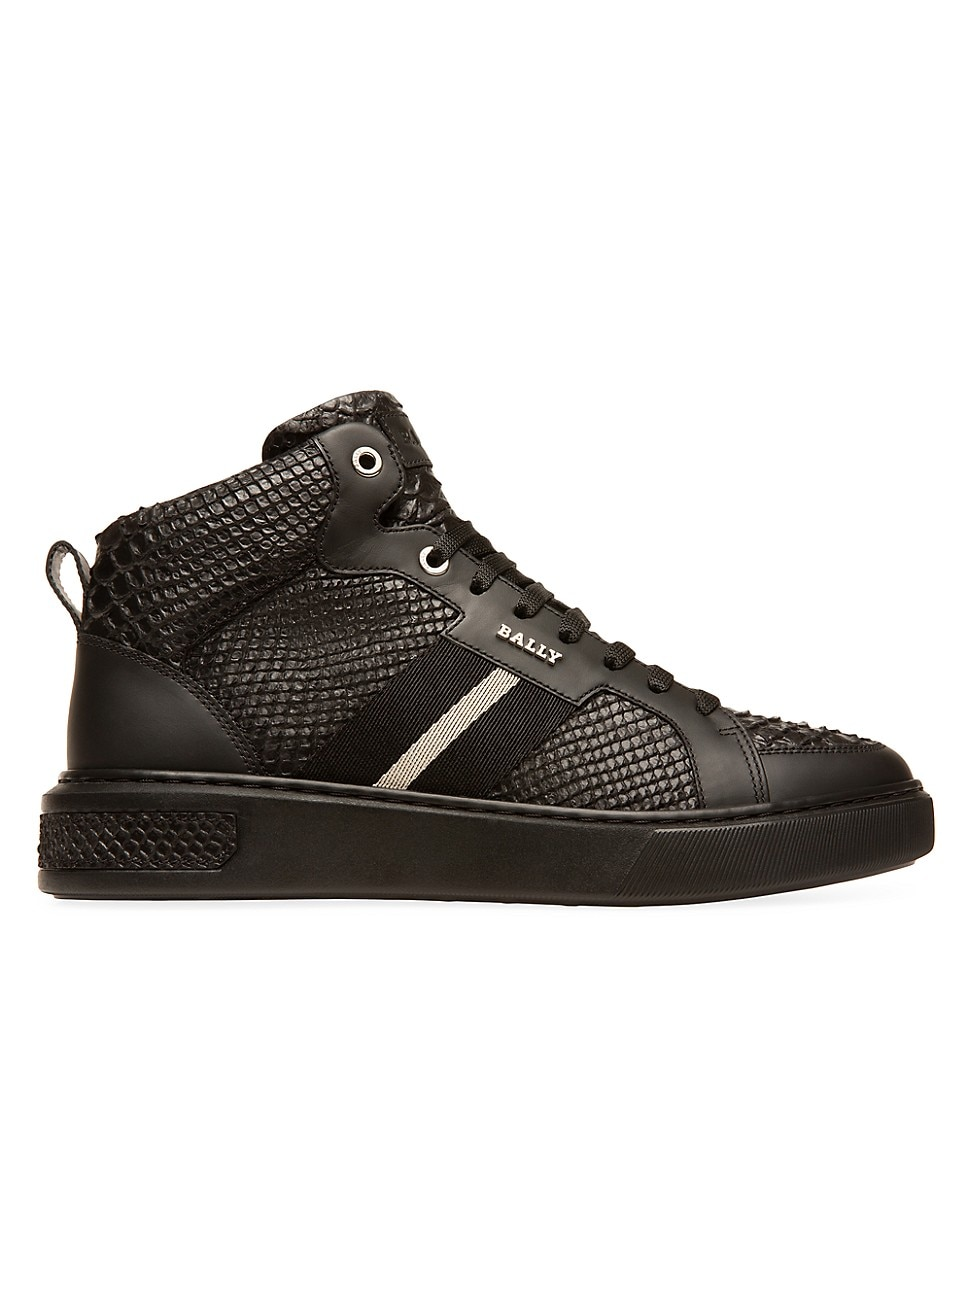 Bally MEN'S MEN'S SNAKE-EMBOSSED HIGH-TOP LEATHER SNEAKERS